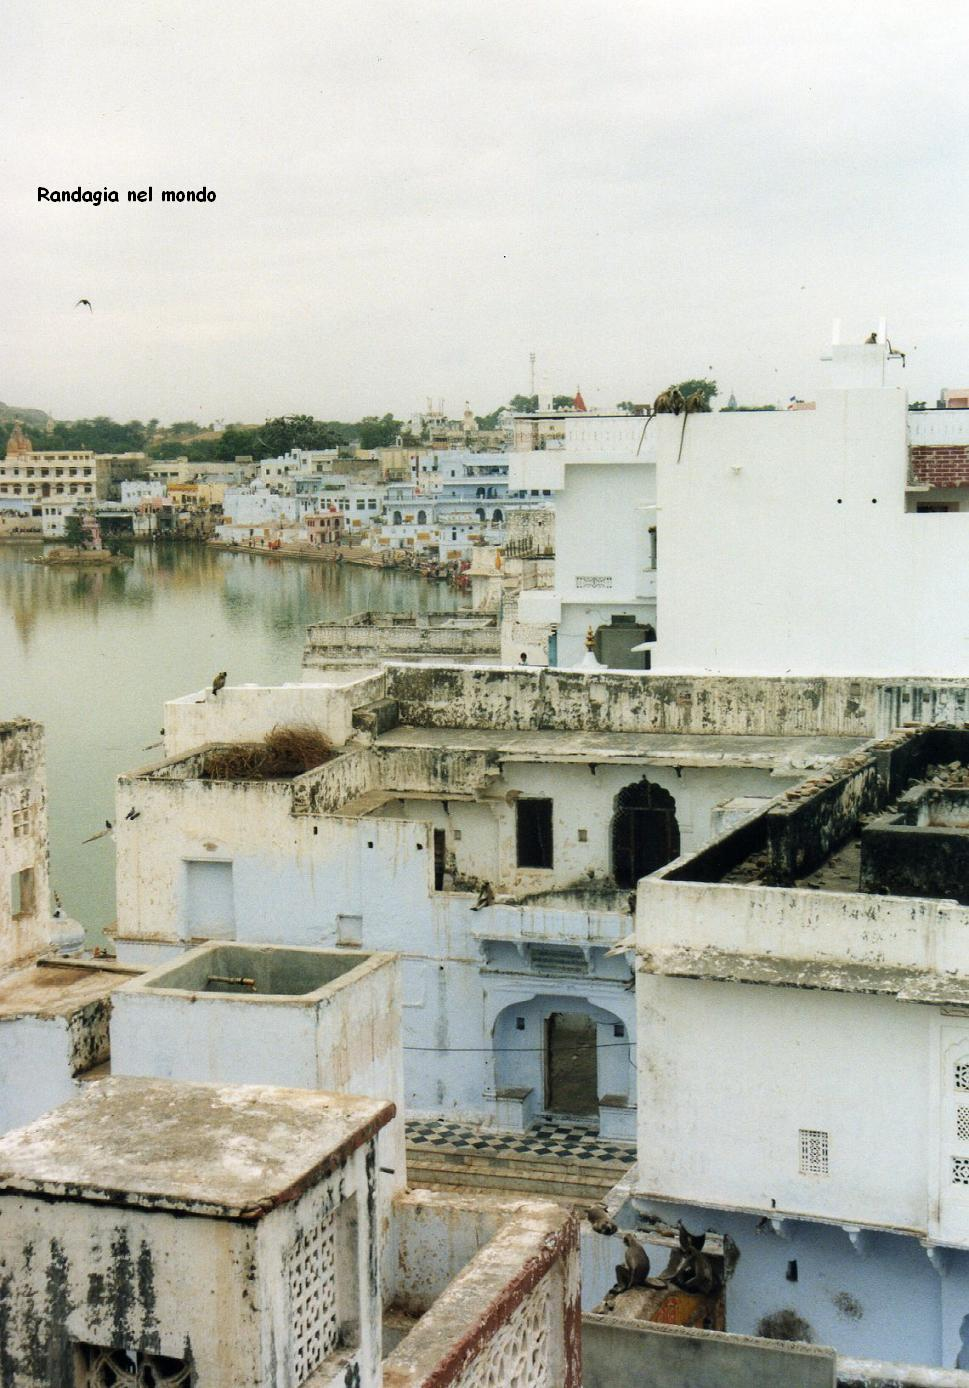 pushkar, view 1